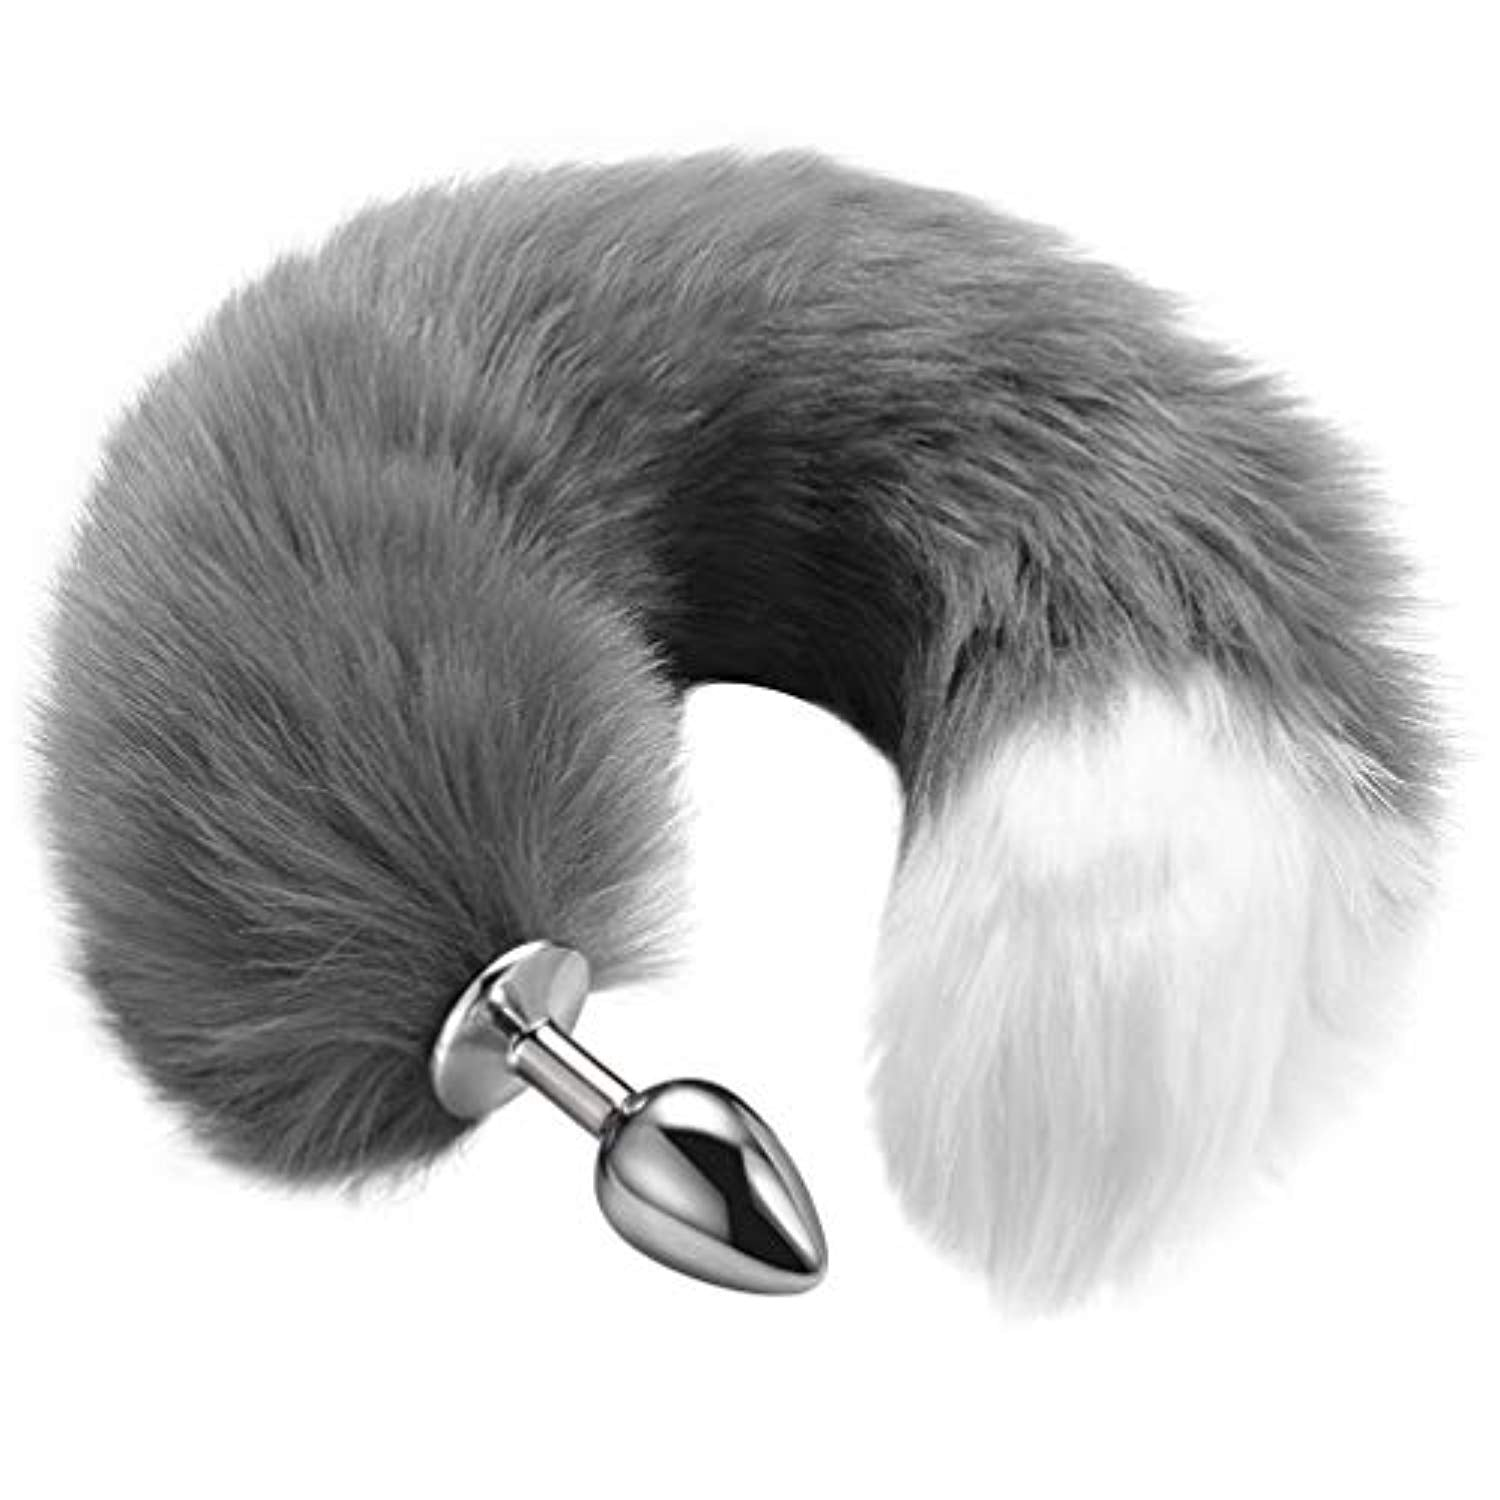 "Butt Plug Fox Tail Anal Plug (15.7"", Stainless Steel)"